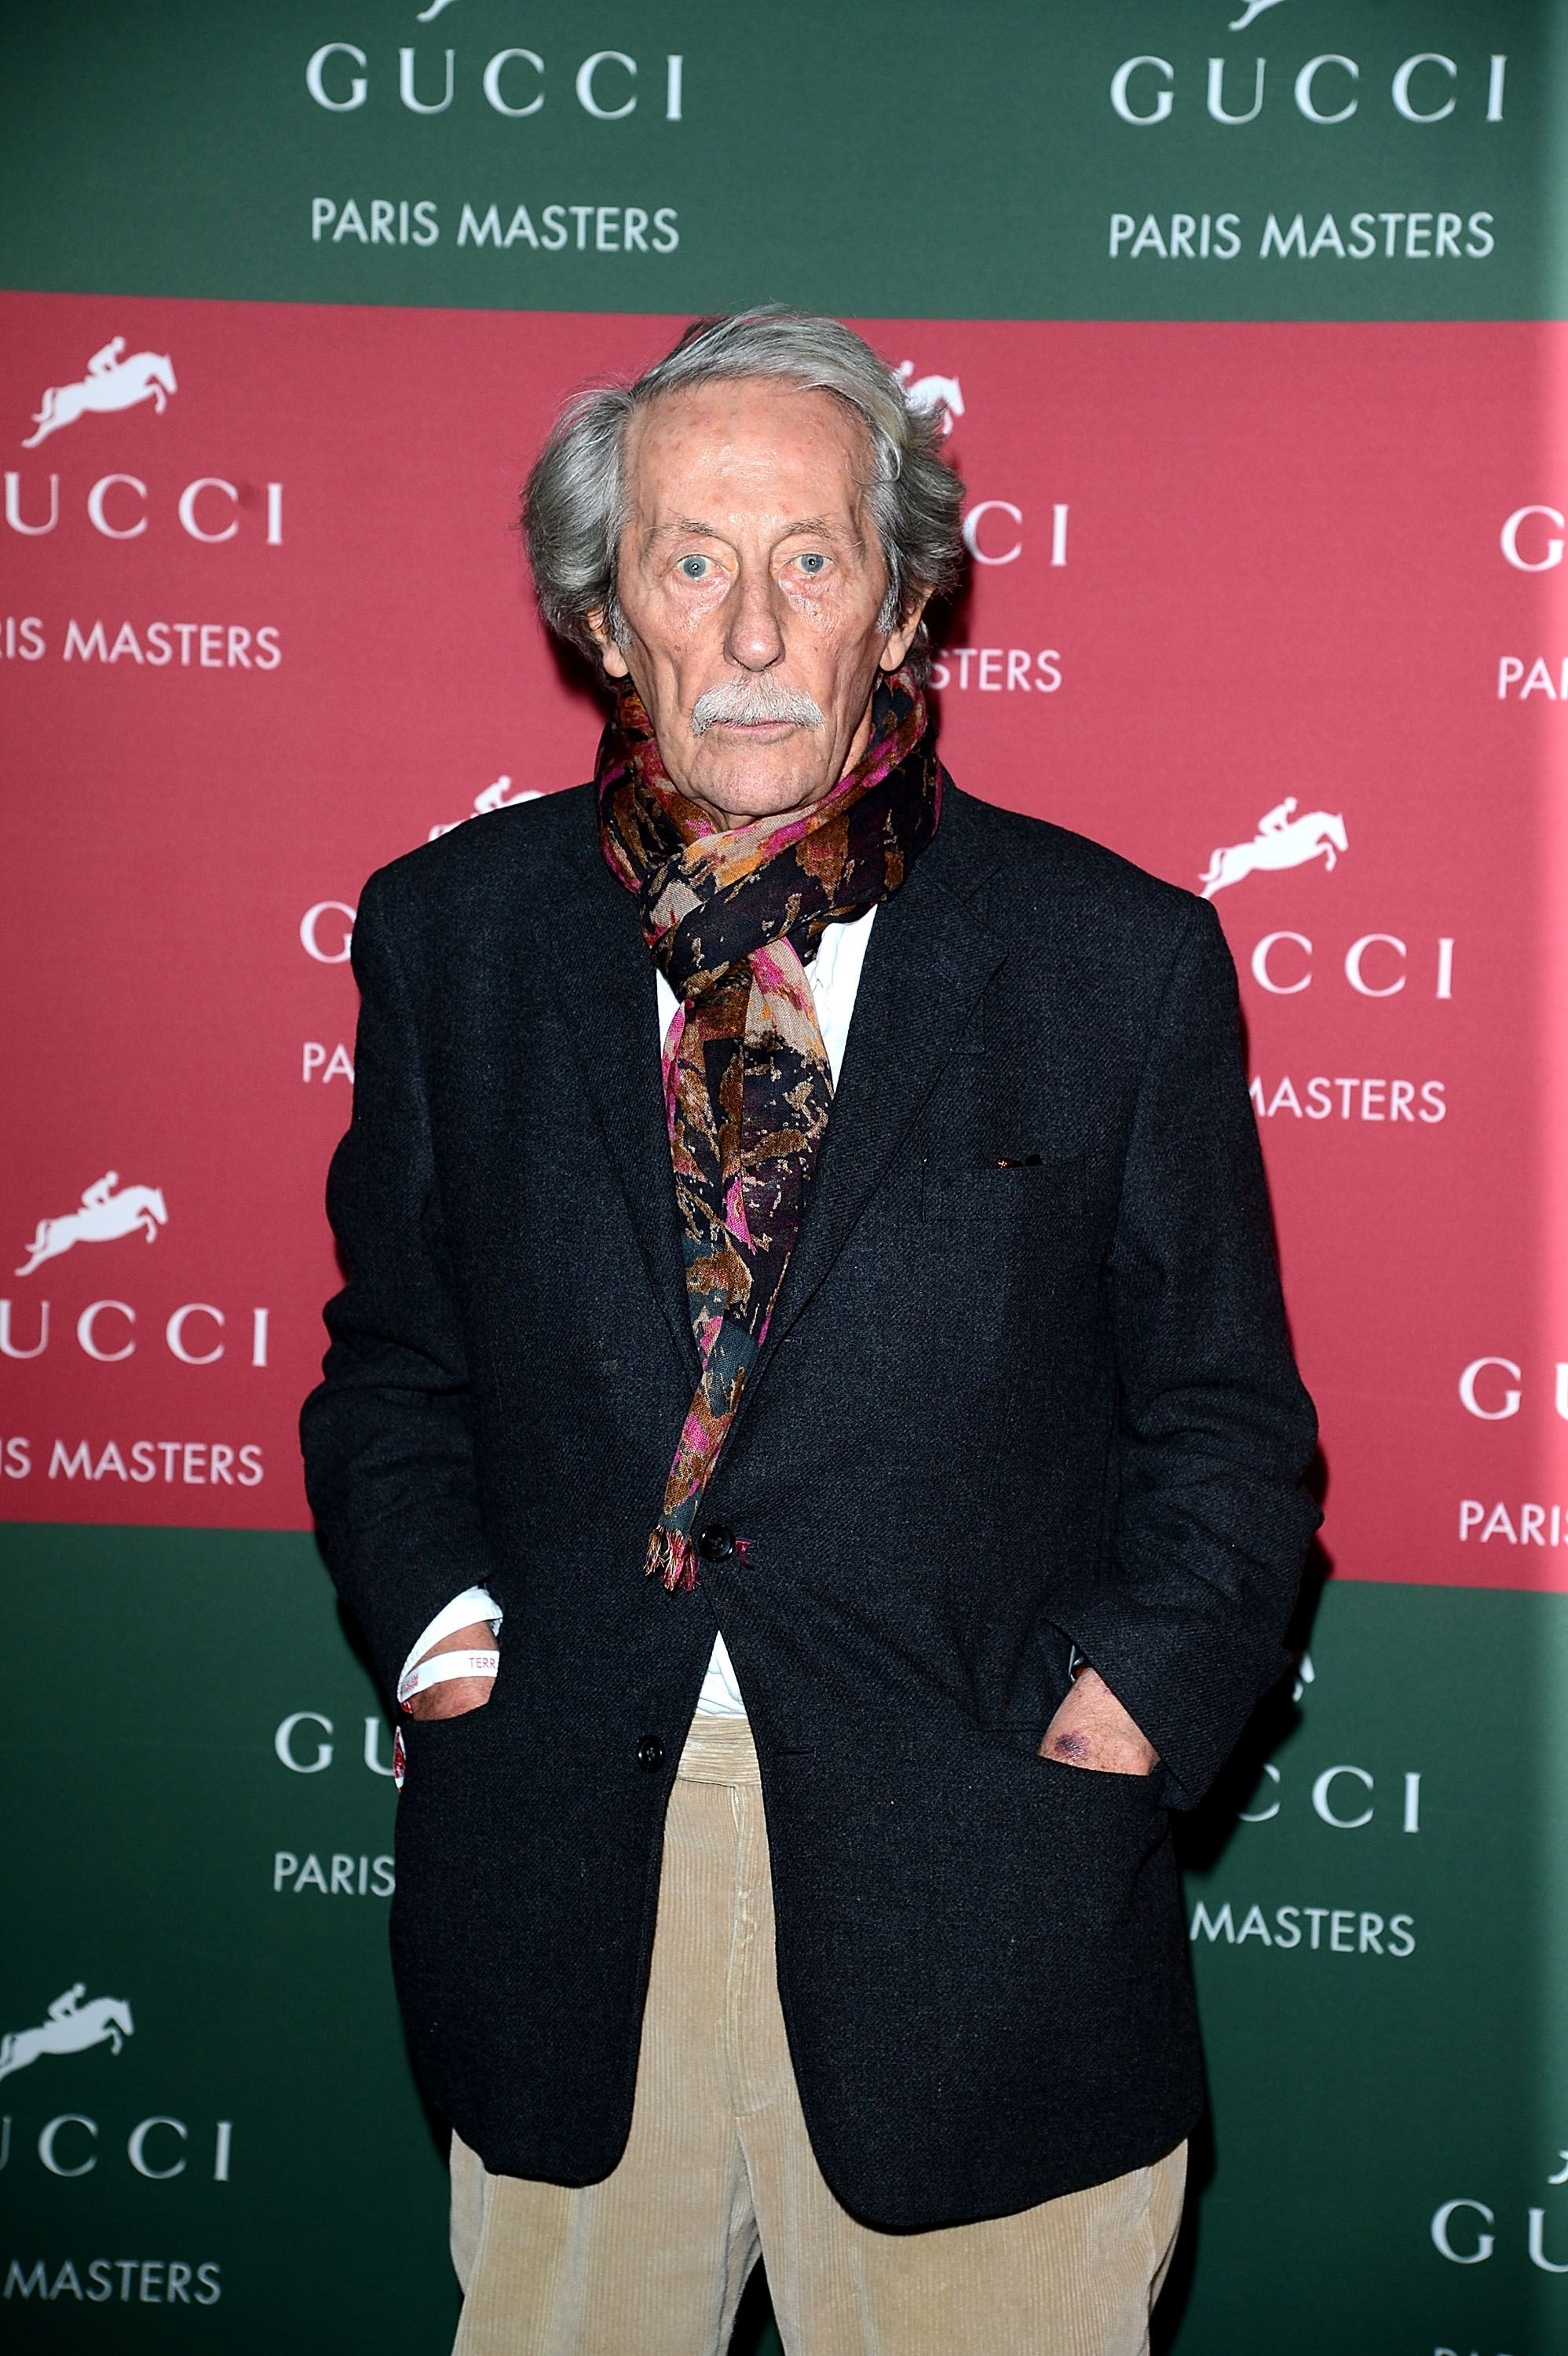 Jean Rochefort à Paris Nord Villepinte le 2 décembre 2012 à Paris, France. | Photo : Getty Images